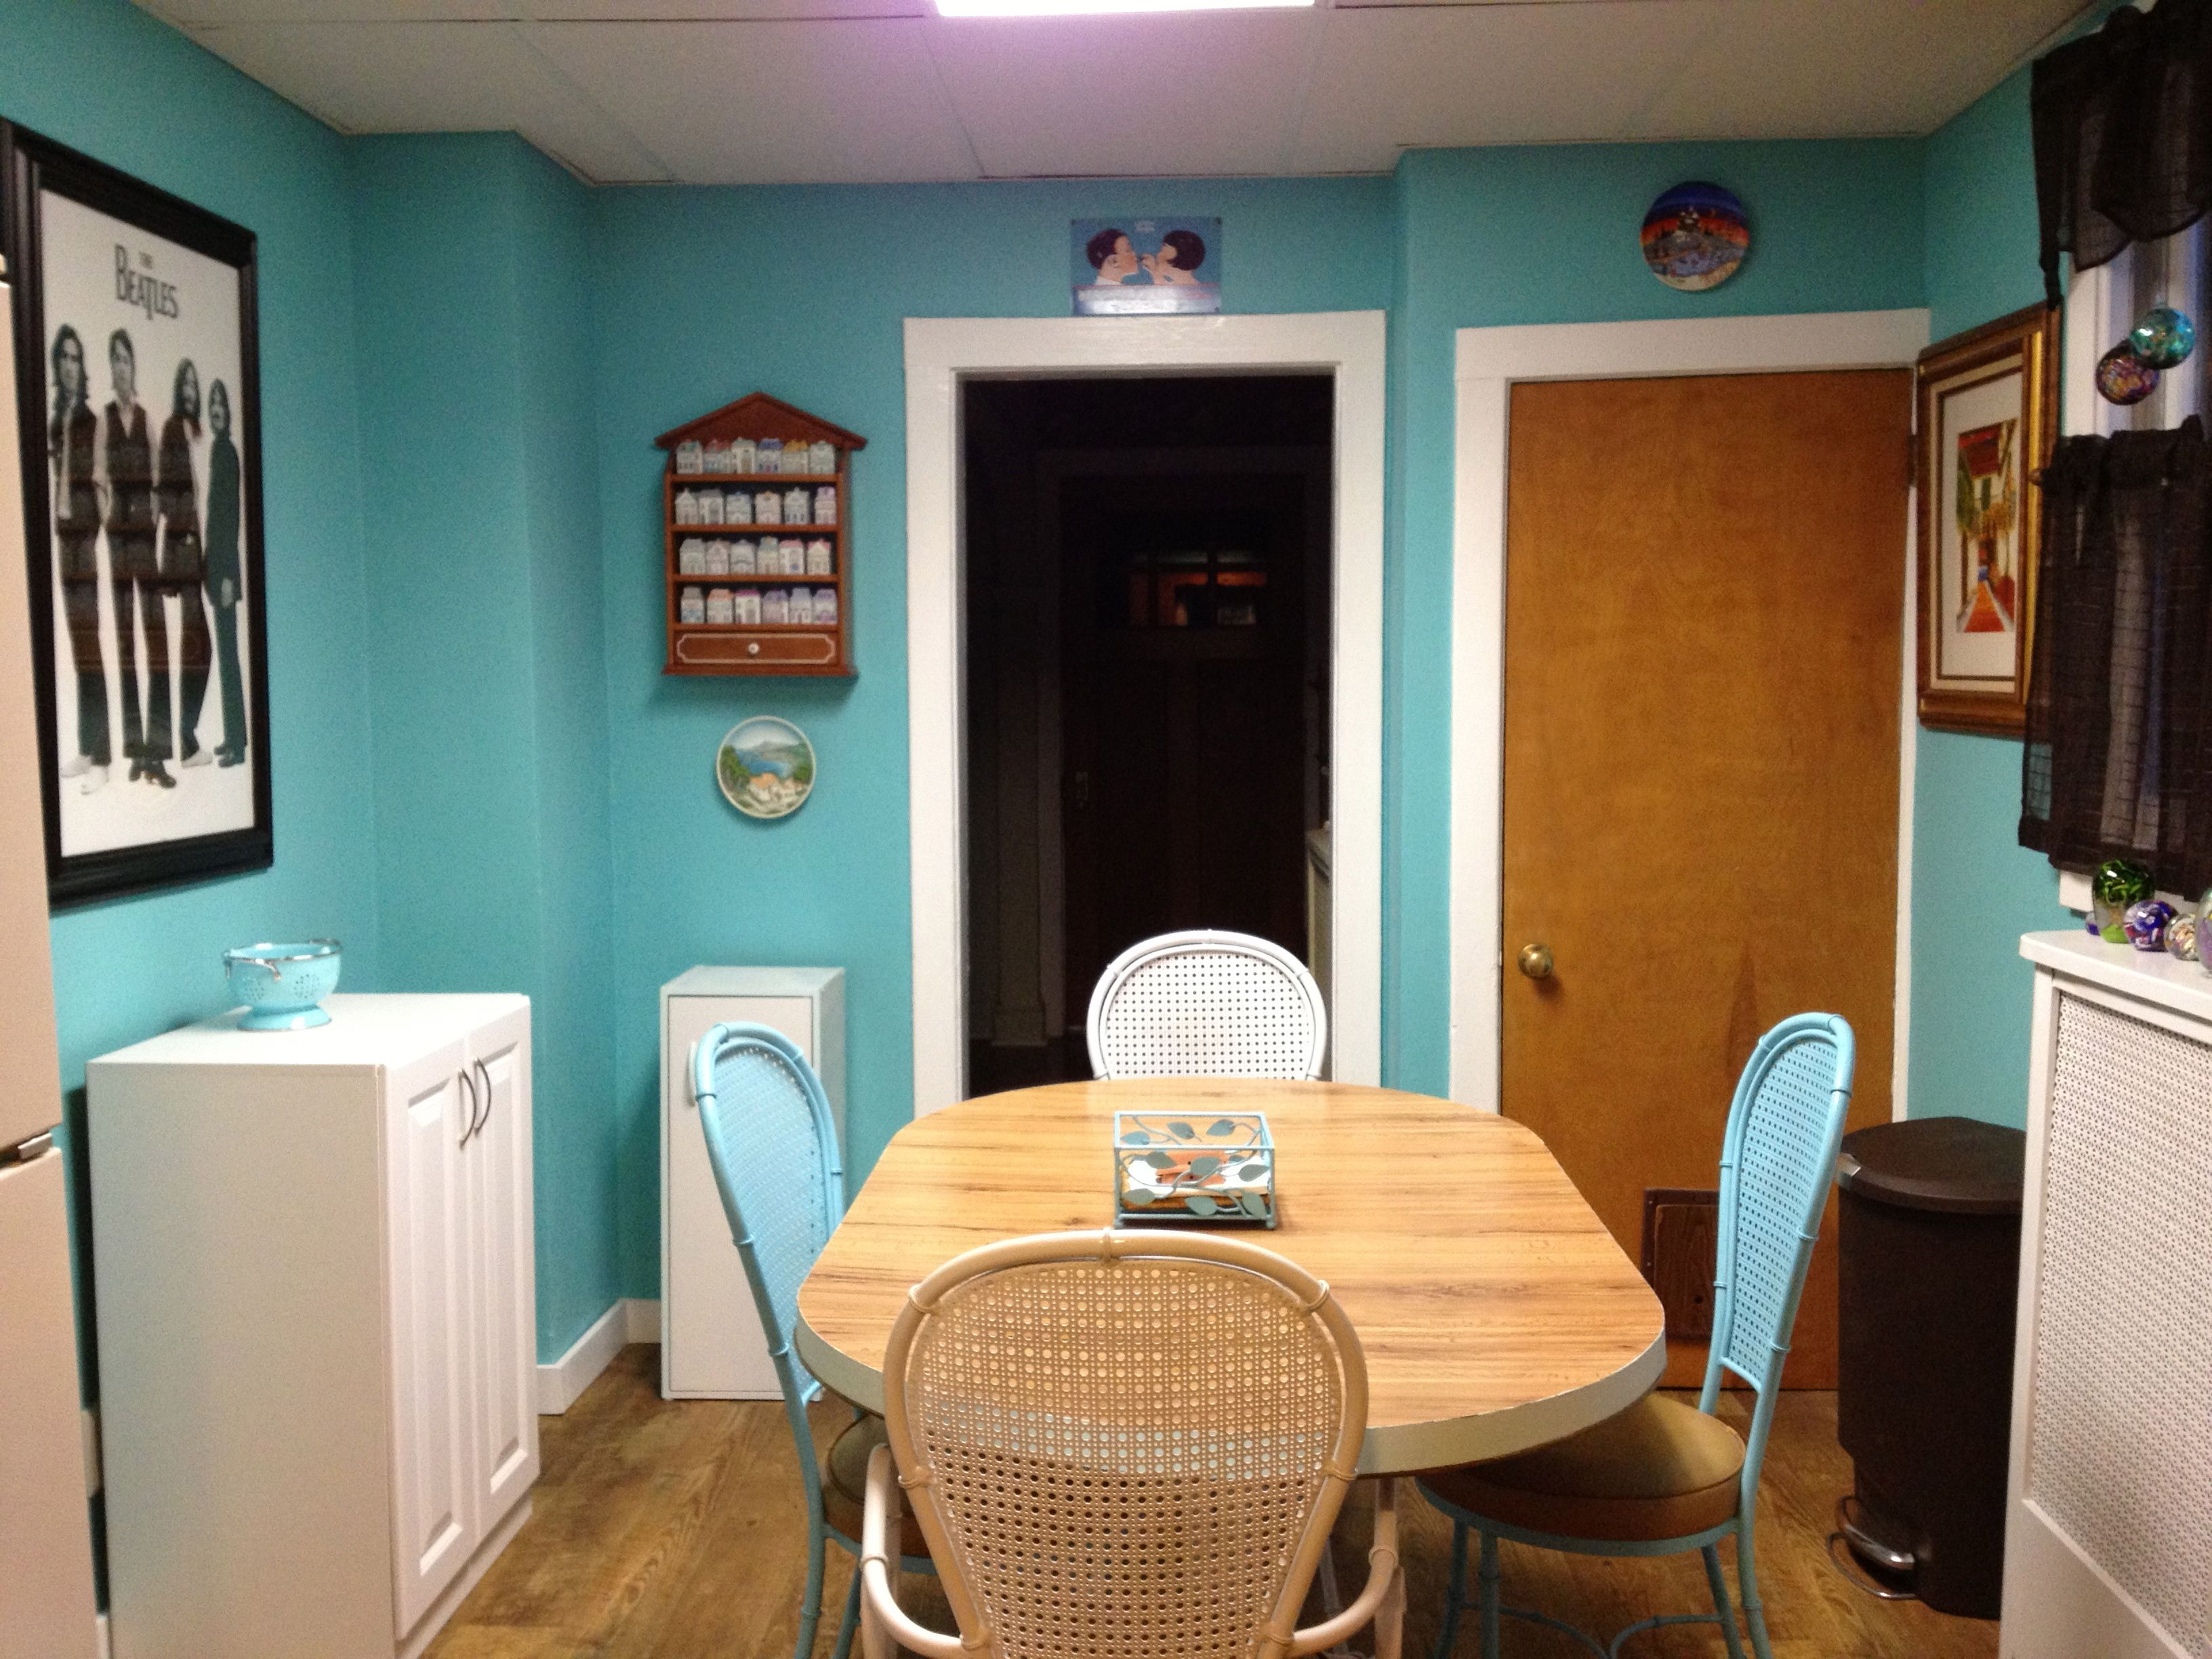 It took 27 years for me to update my kitchen. Now its aqua blue and ...